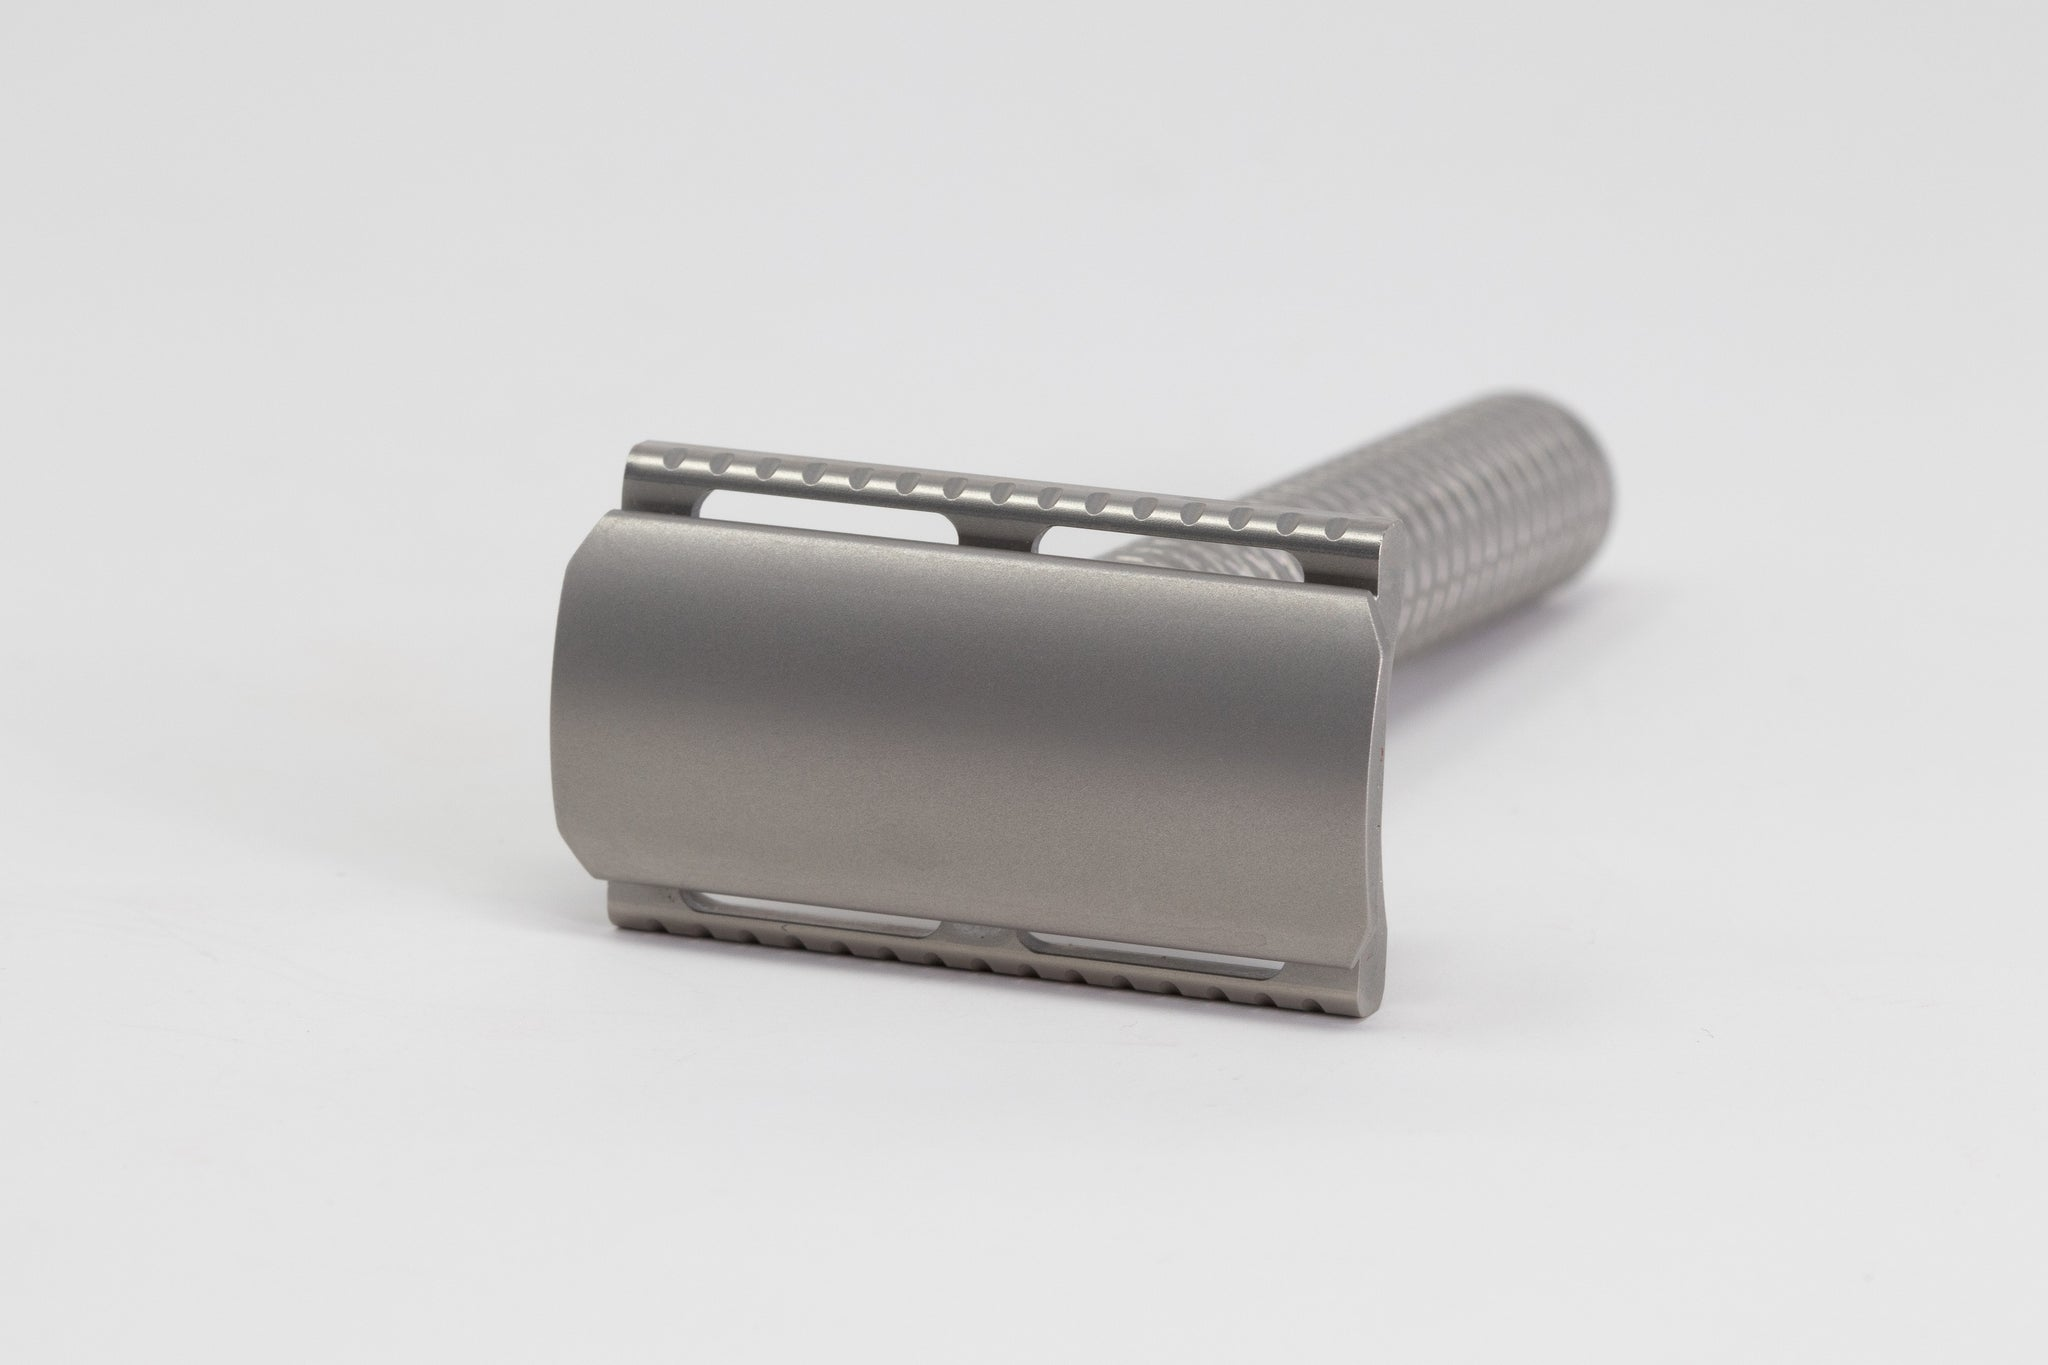 The Christopher Bradley Widebody Razor Stainless Steel